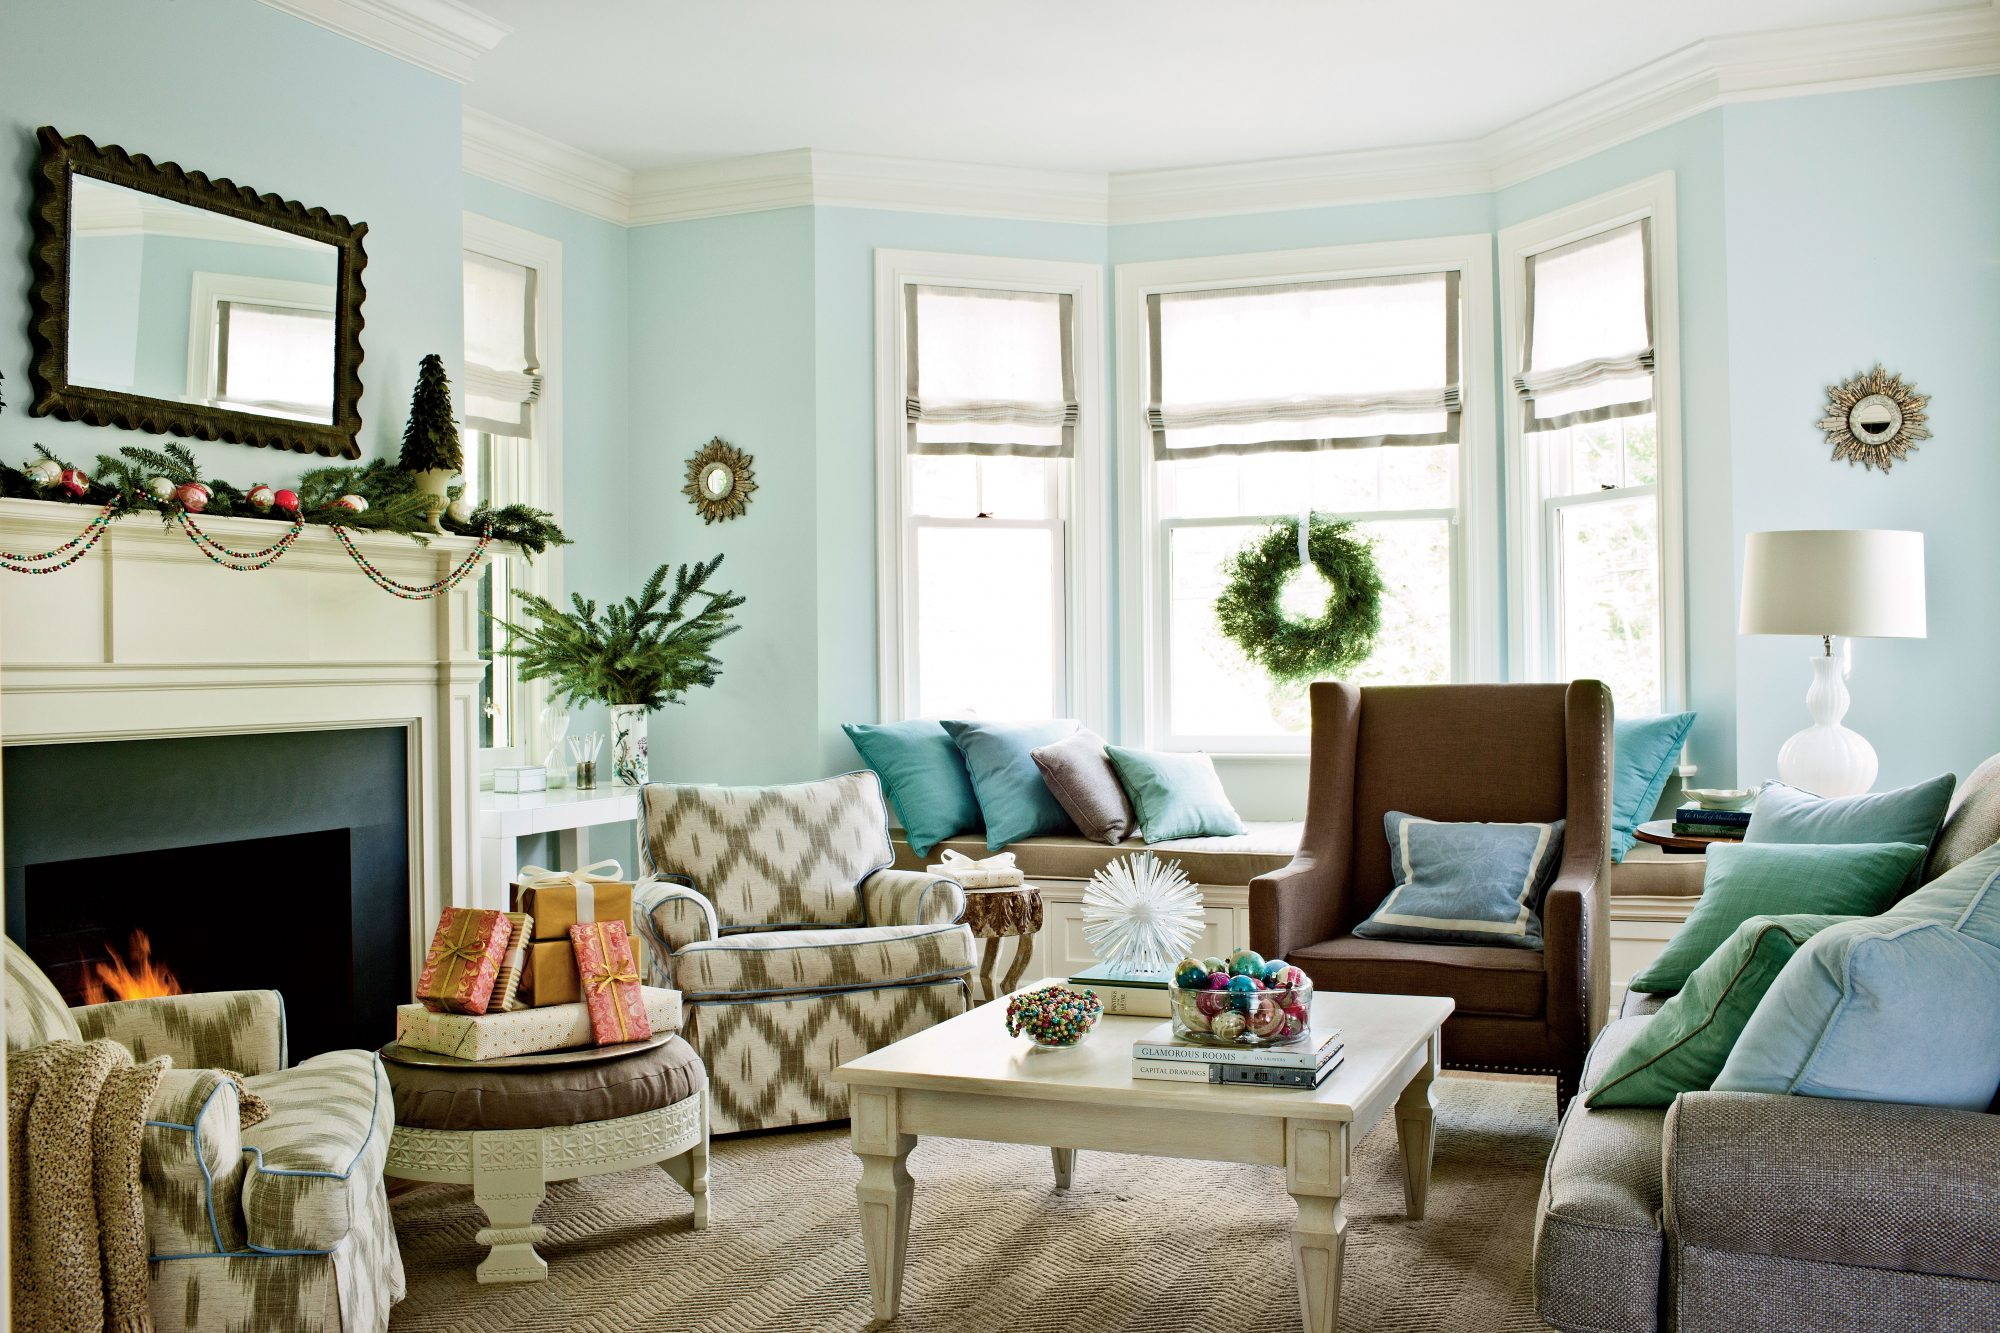 Strive For Easy Elegance. Sarah Tuttle Living Room Decorated For Christmas